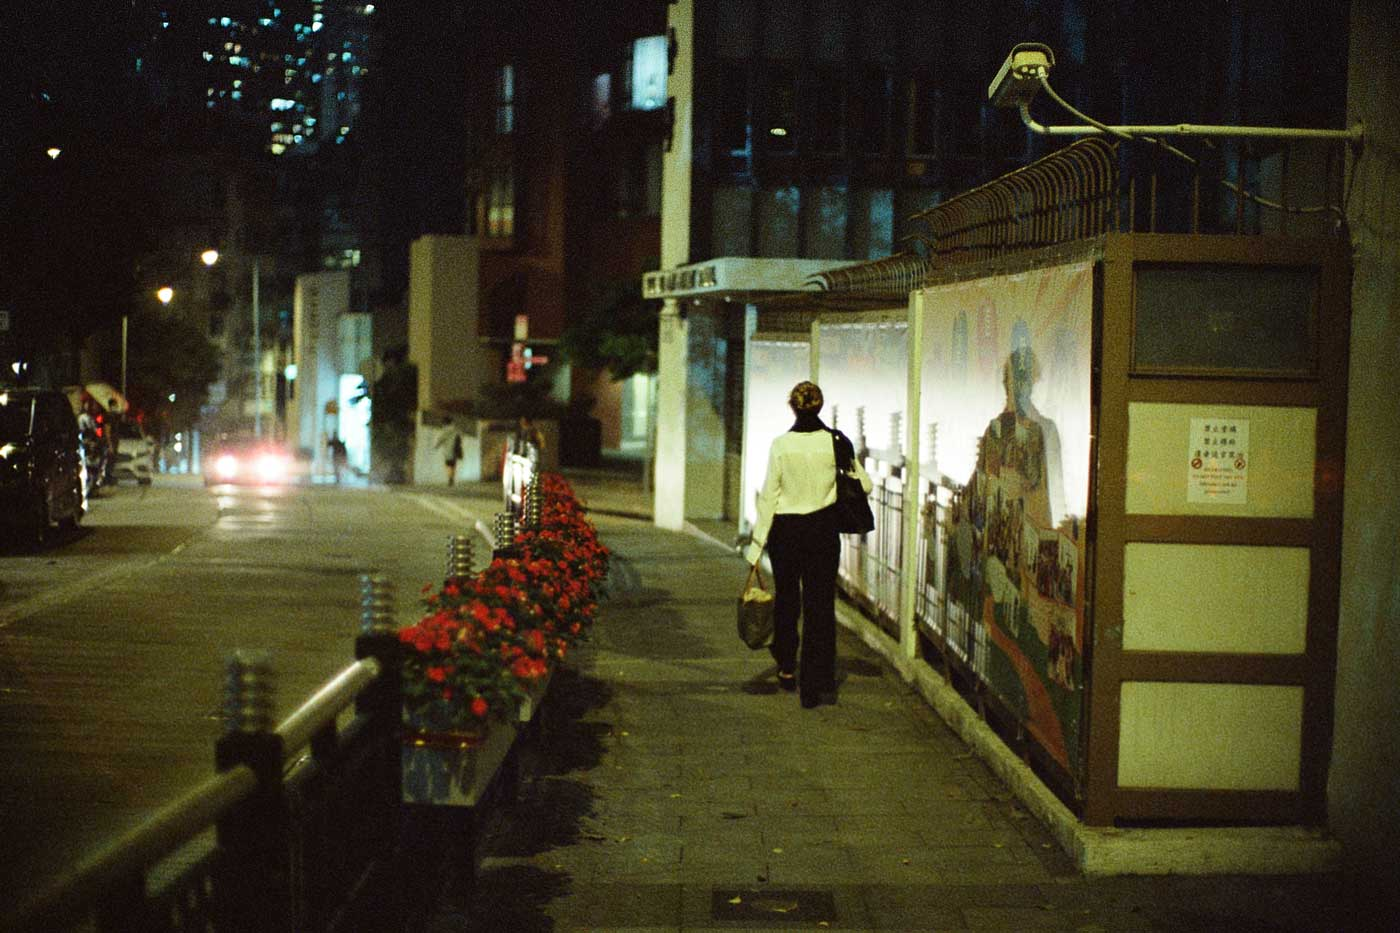 analog-film-review-kodak-vision3-vision-3-5219-7219-500T-800T-tungsten-photography-hk-night-central-near-soho-woman-walking-back-home-reflection-noctilux-50mm-f1.0-f1-e58-v1